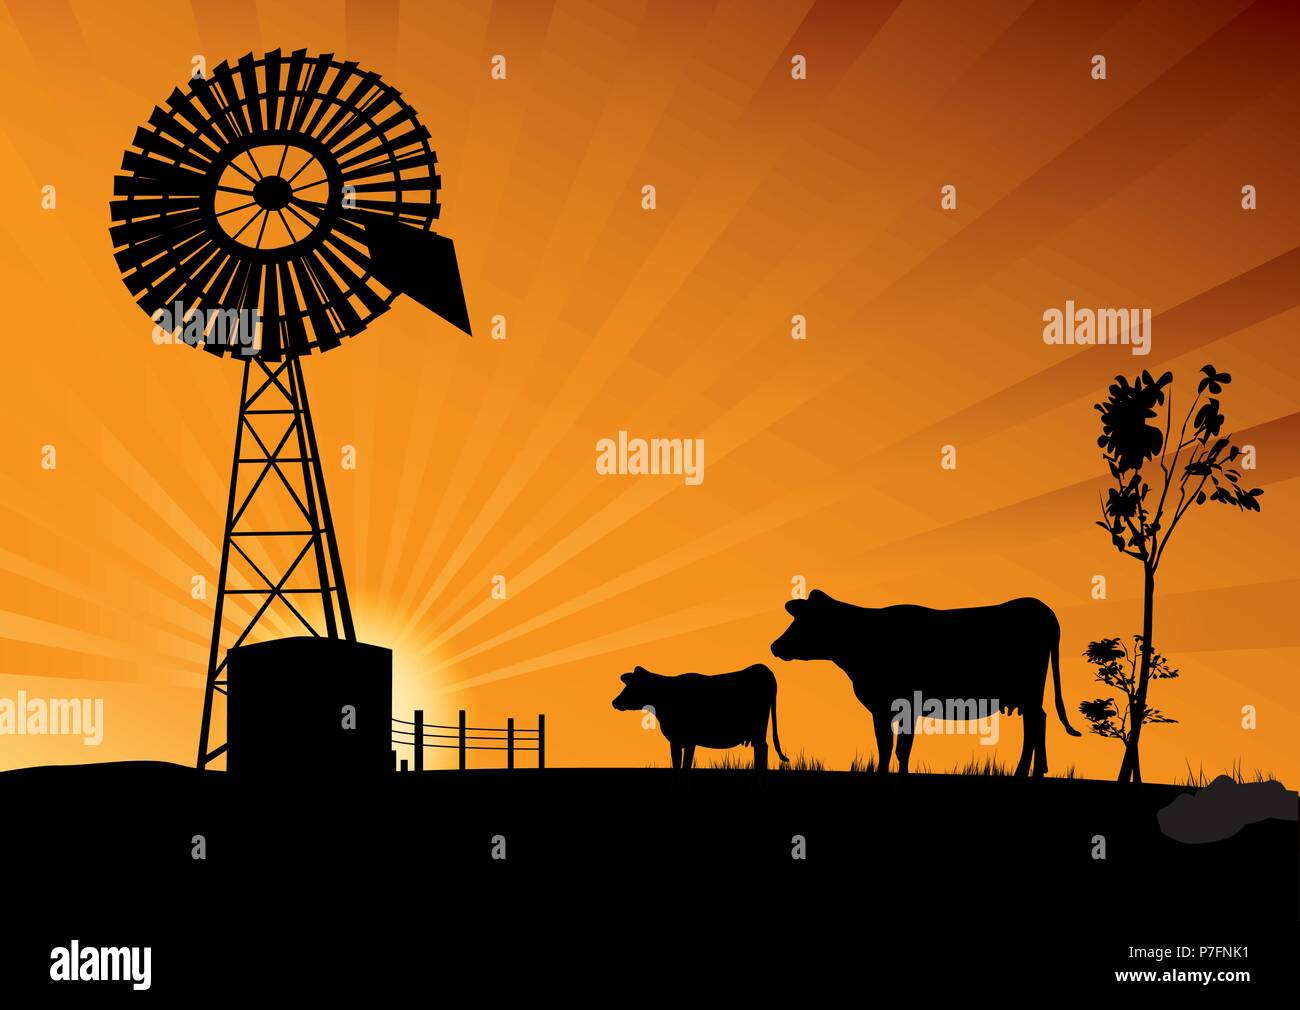 Australian windmill and cows in the outbacks - Stock Vector